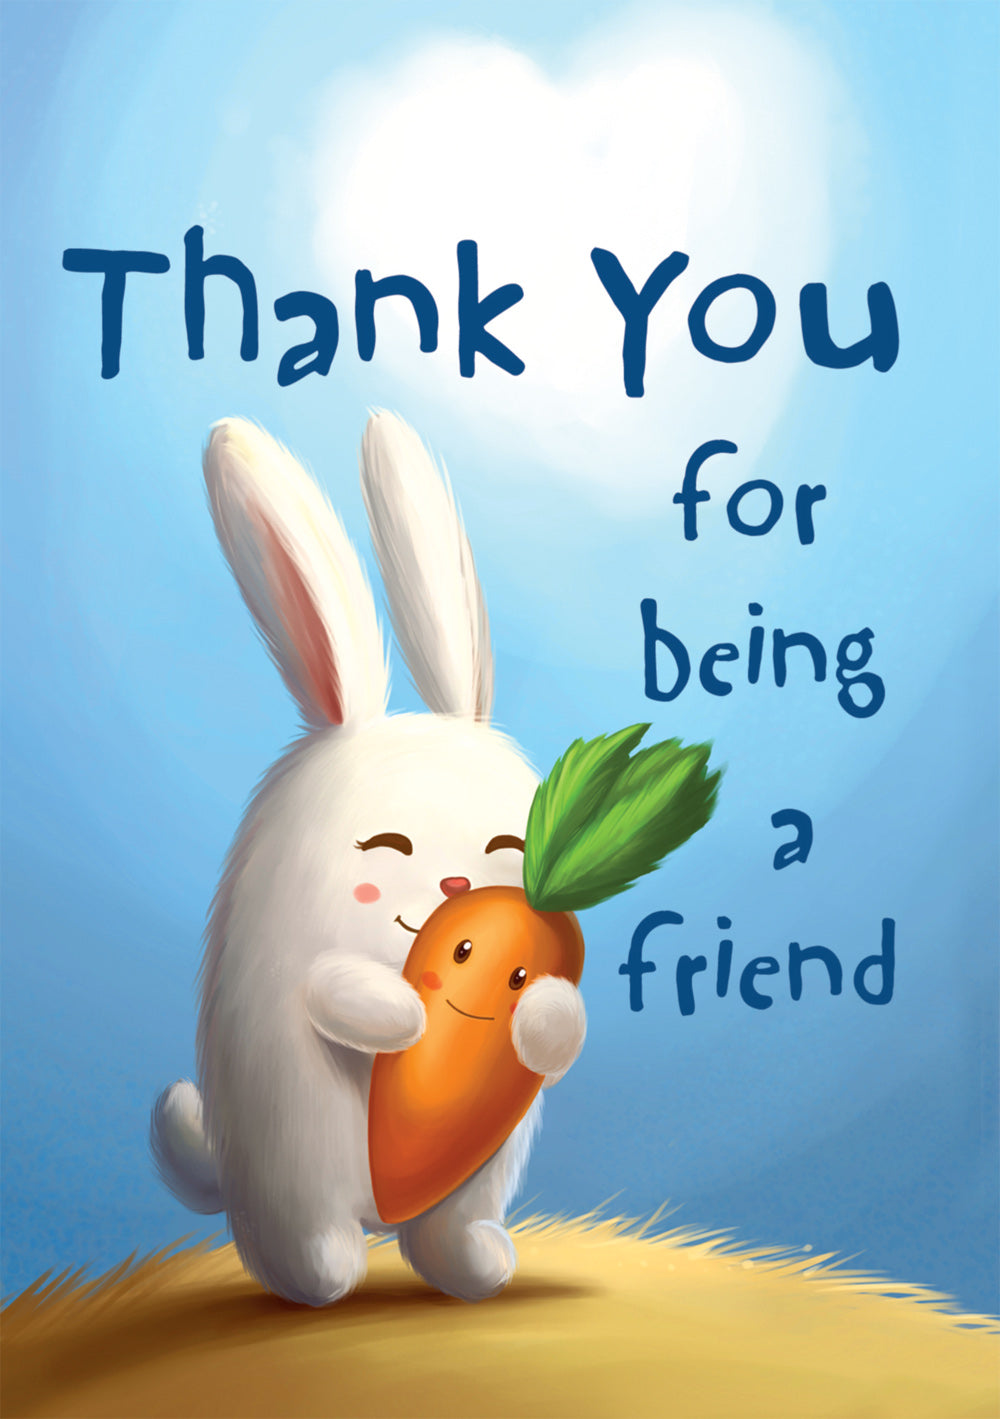 Thank You Bunny/Carrot - Standard Card Gloss (6 Pack)Thank You Bunny/Carrot - Standard Card Gloss (6 Pack)